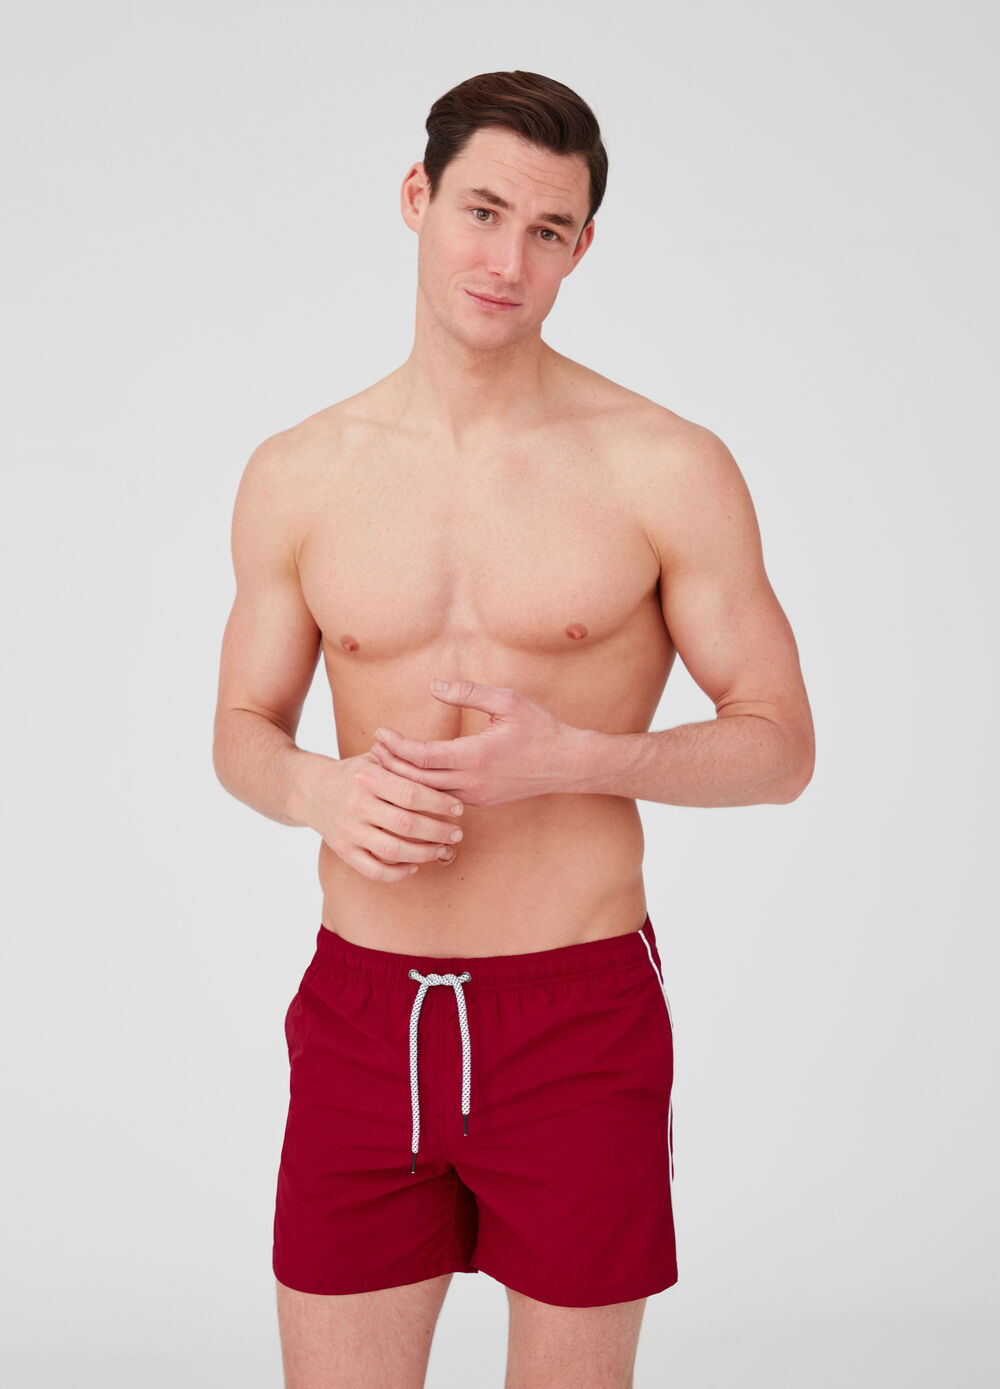 Swim shorts with pockets, drawstring and insert